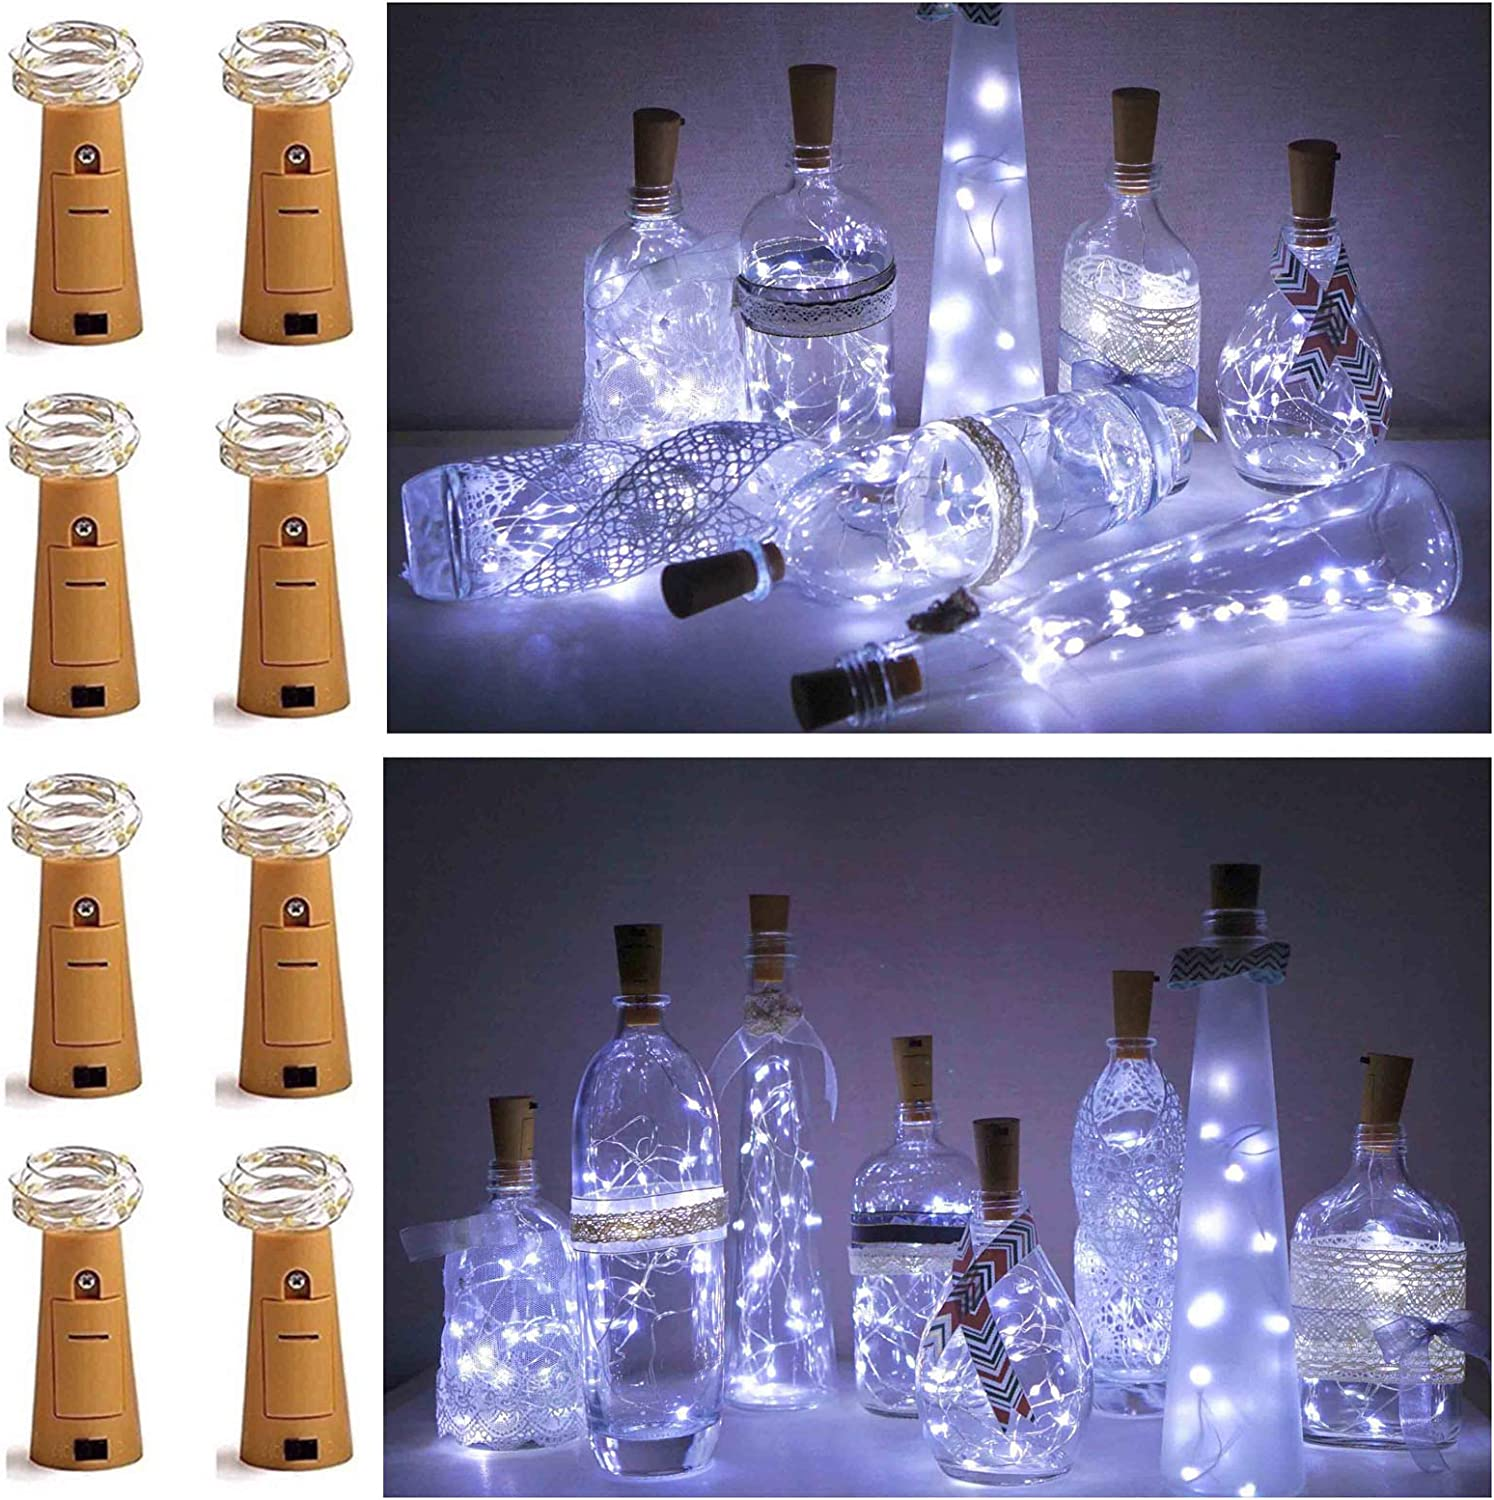 UK 20LED Wine Bottle Copper Wire Fairy String Light Cork Festival Party Colorful